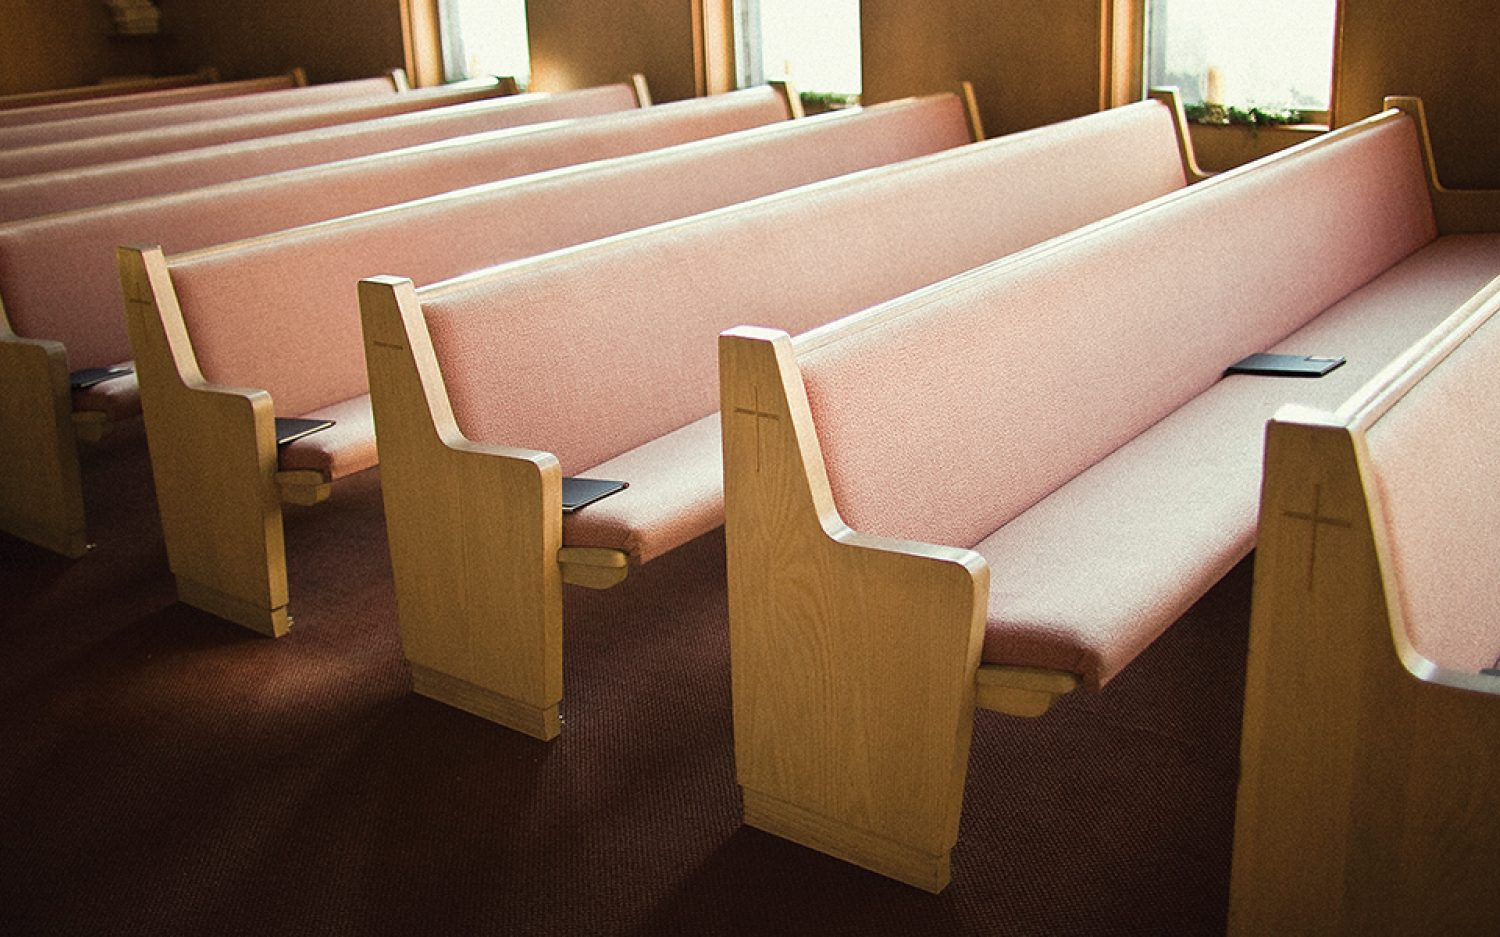 Unchurched election